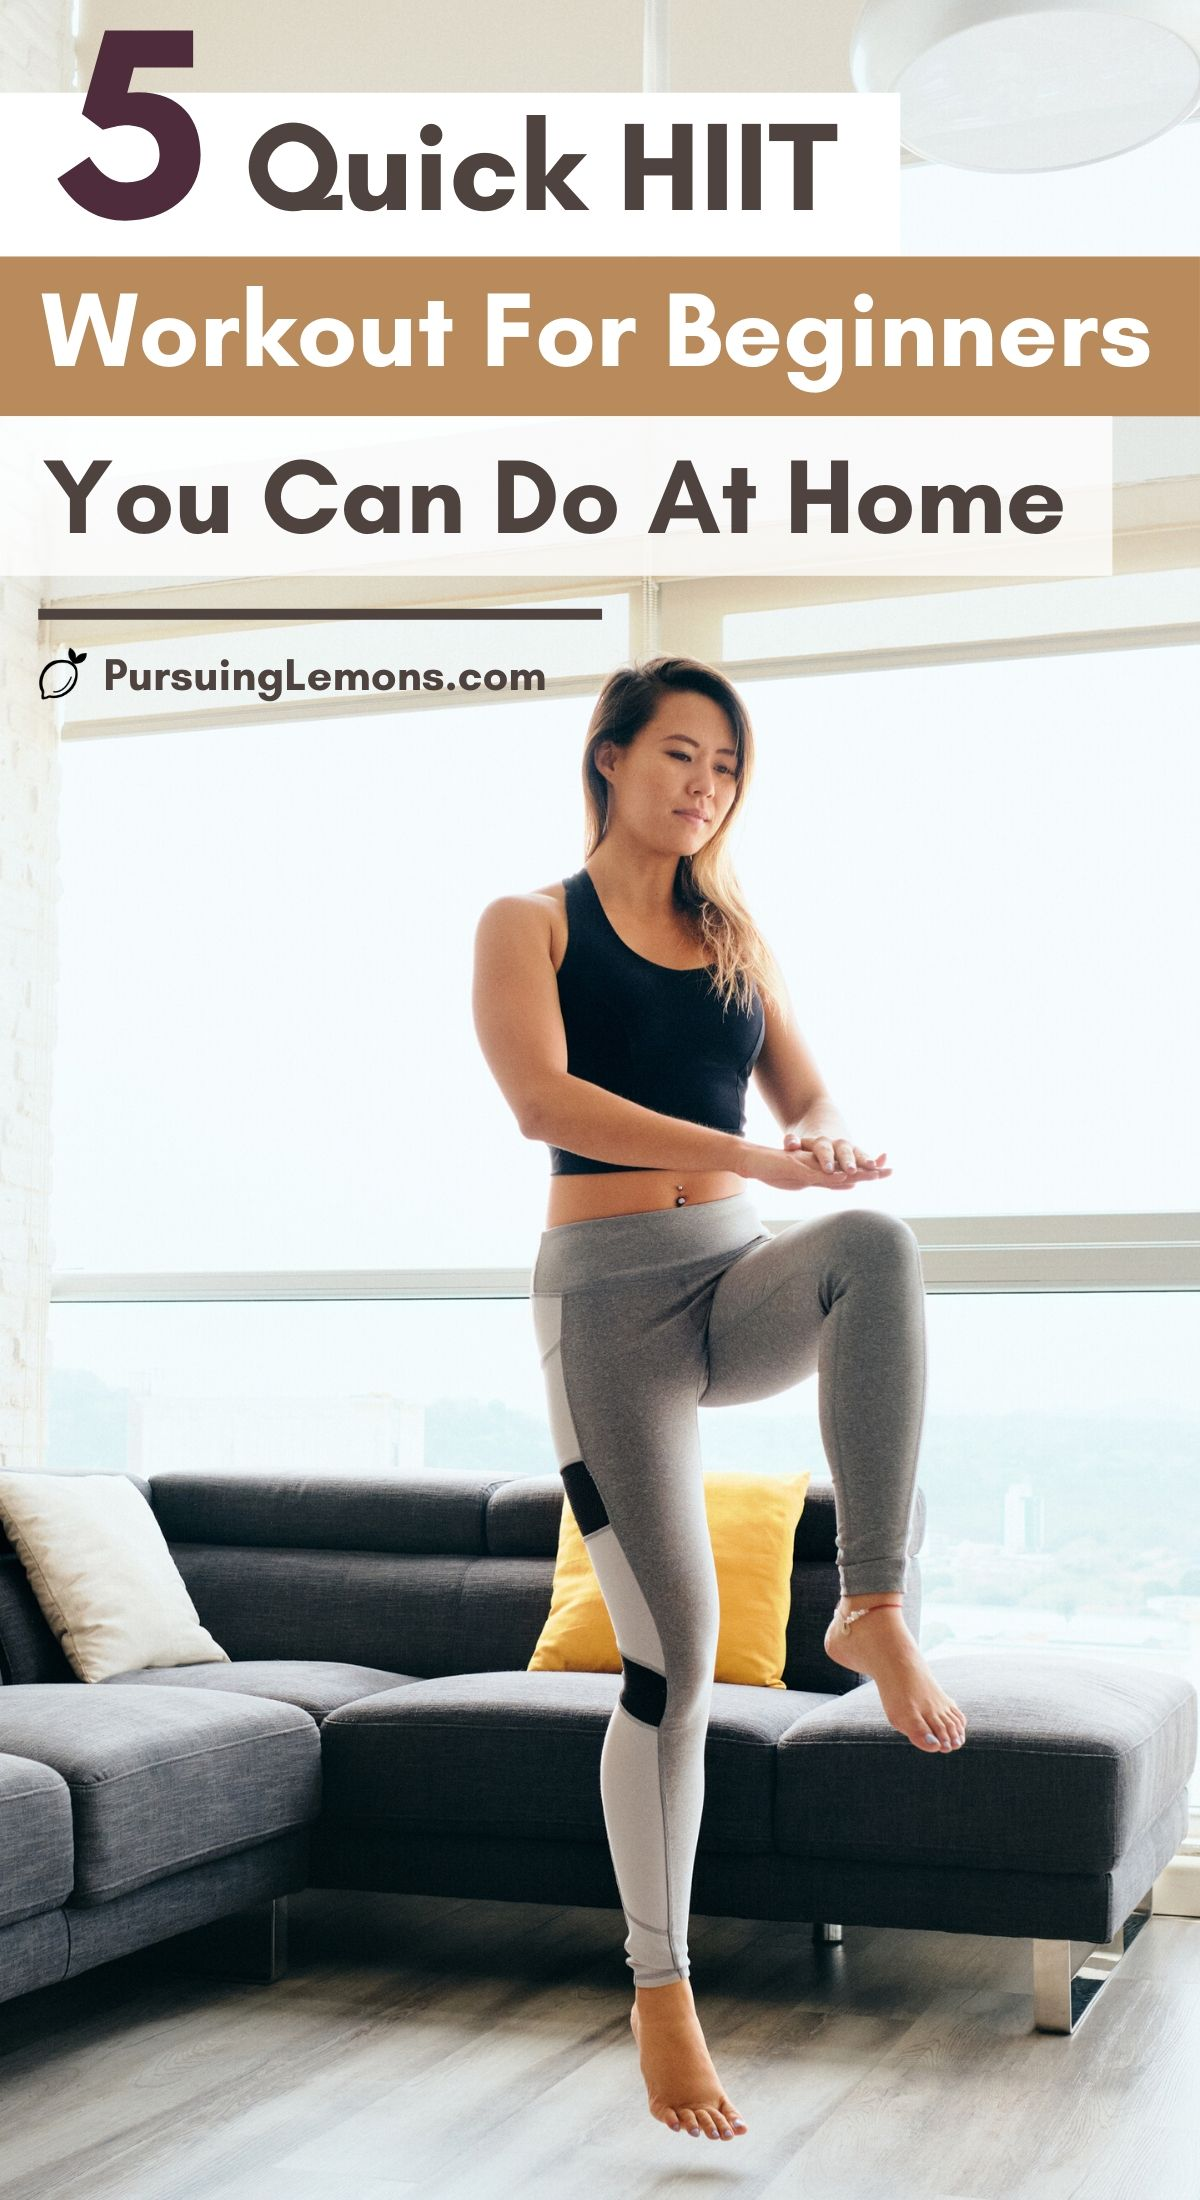 5 Quick HIIT Workouts For Beginners | These HIIT workout routines will burn belly fat and help you slim down in no time. It is a workout for beginners and you can do them at home. These cardio plus strengthening exercises is what makes HIIT so awesome and practical. High intensity interval training is meant to help you burn calories even after you had finished the workout. #HIIT #hiitworkout #workoutsathome